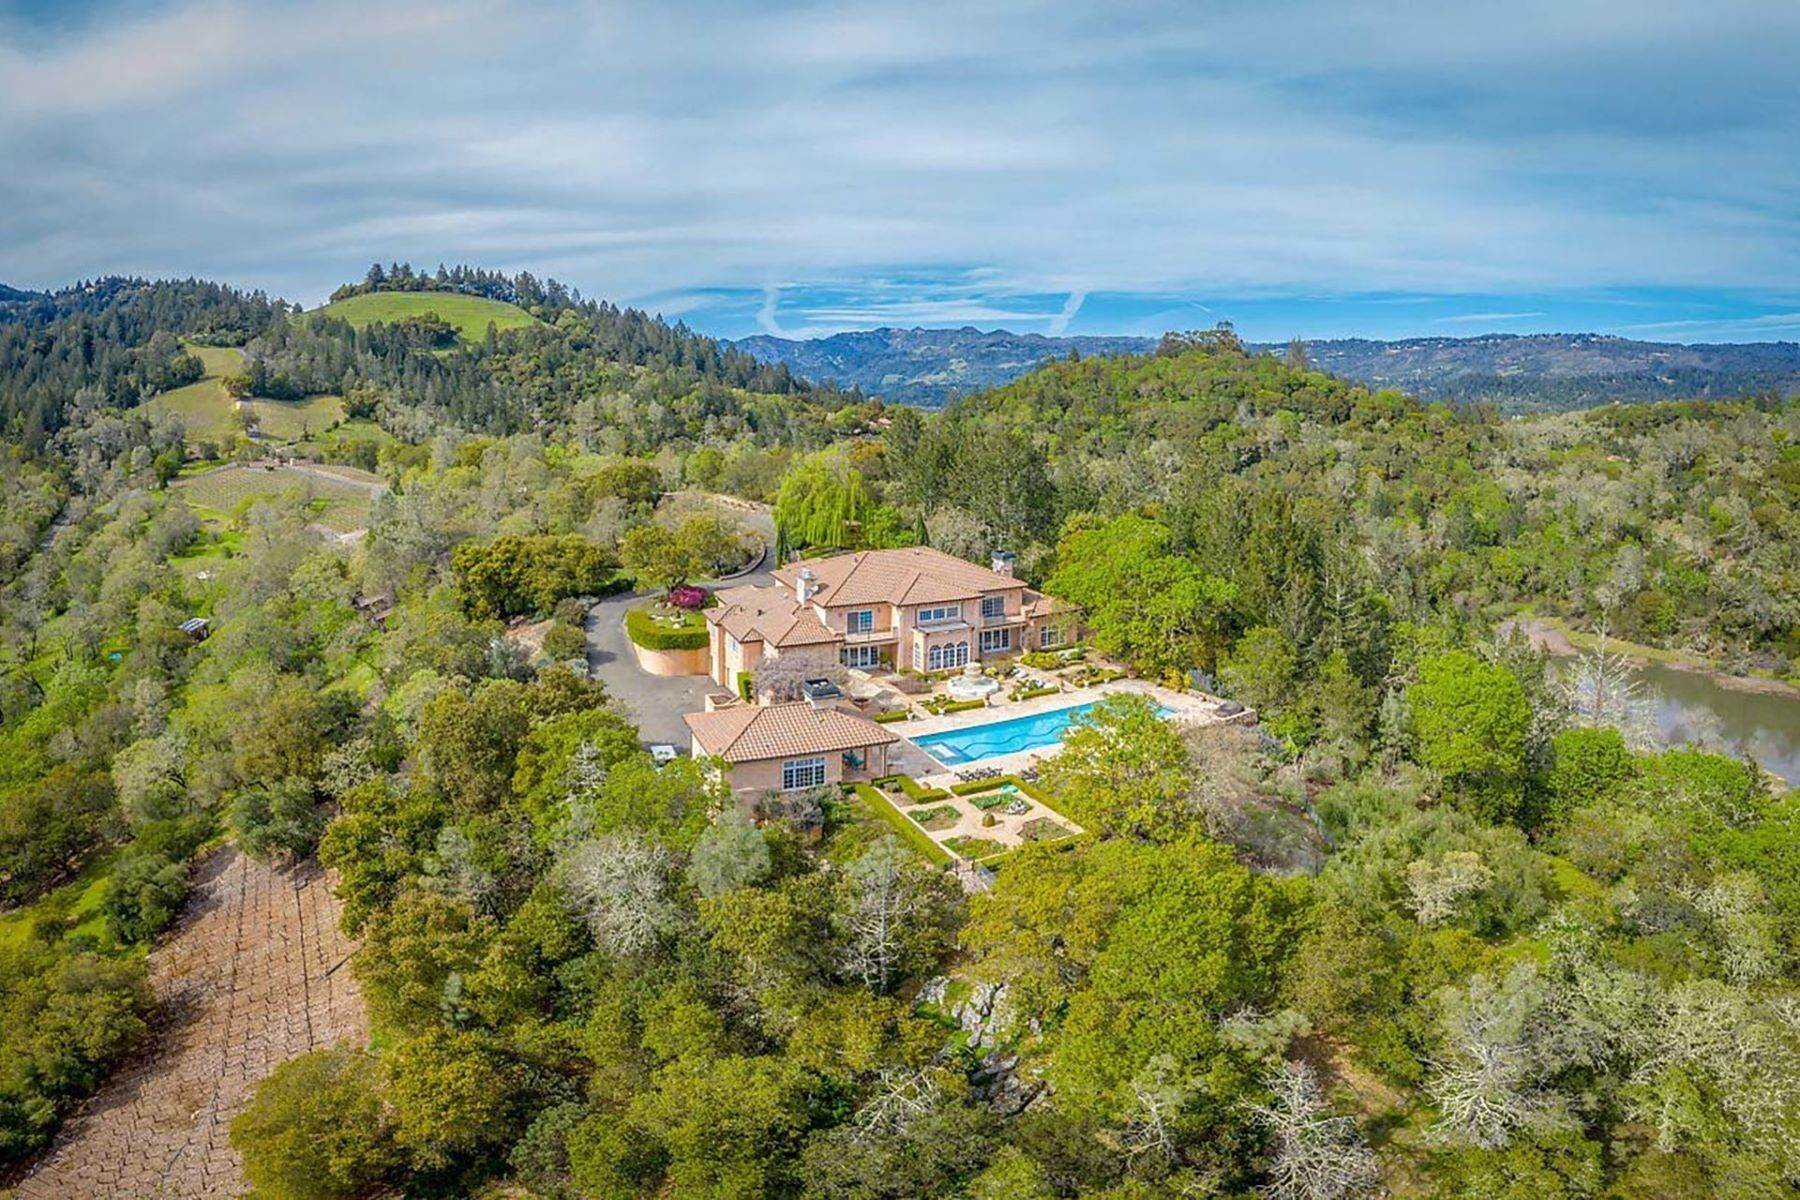 Single Family Homes for Sale at 2900 Spring Mountain Road St. Helena, California 94574 United States